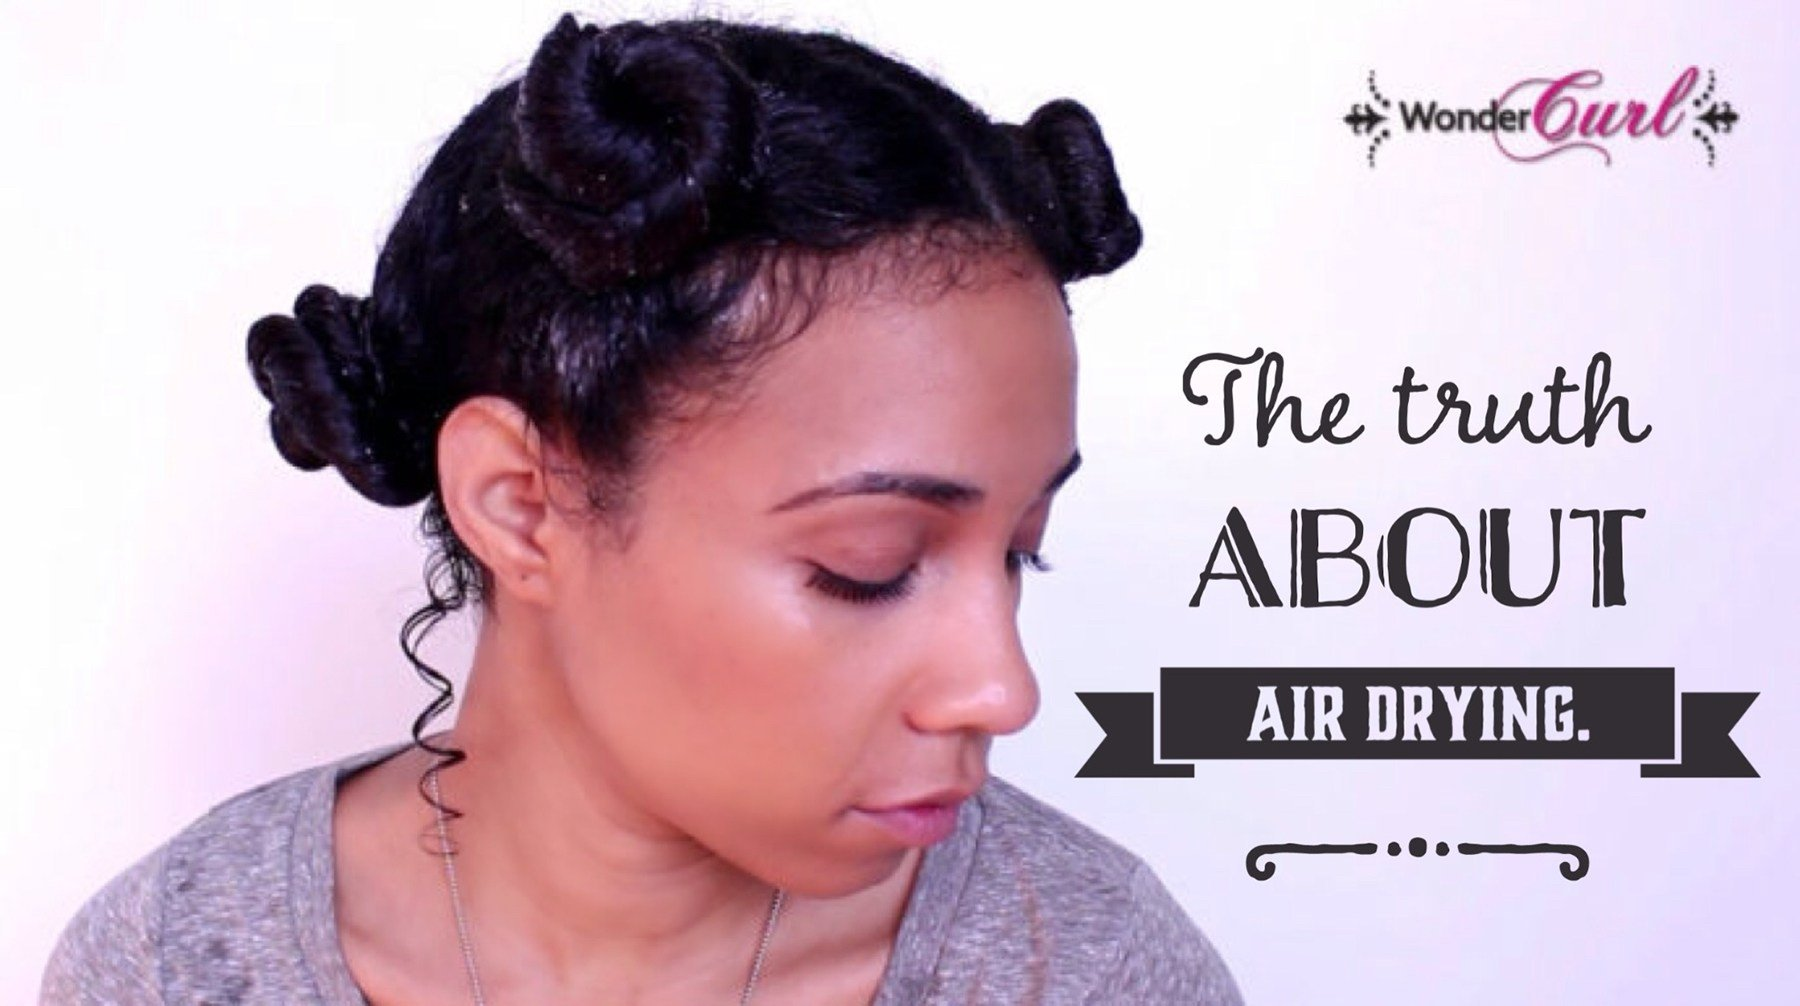 Air-drying, is this healthiest way to dry your hair?